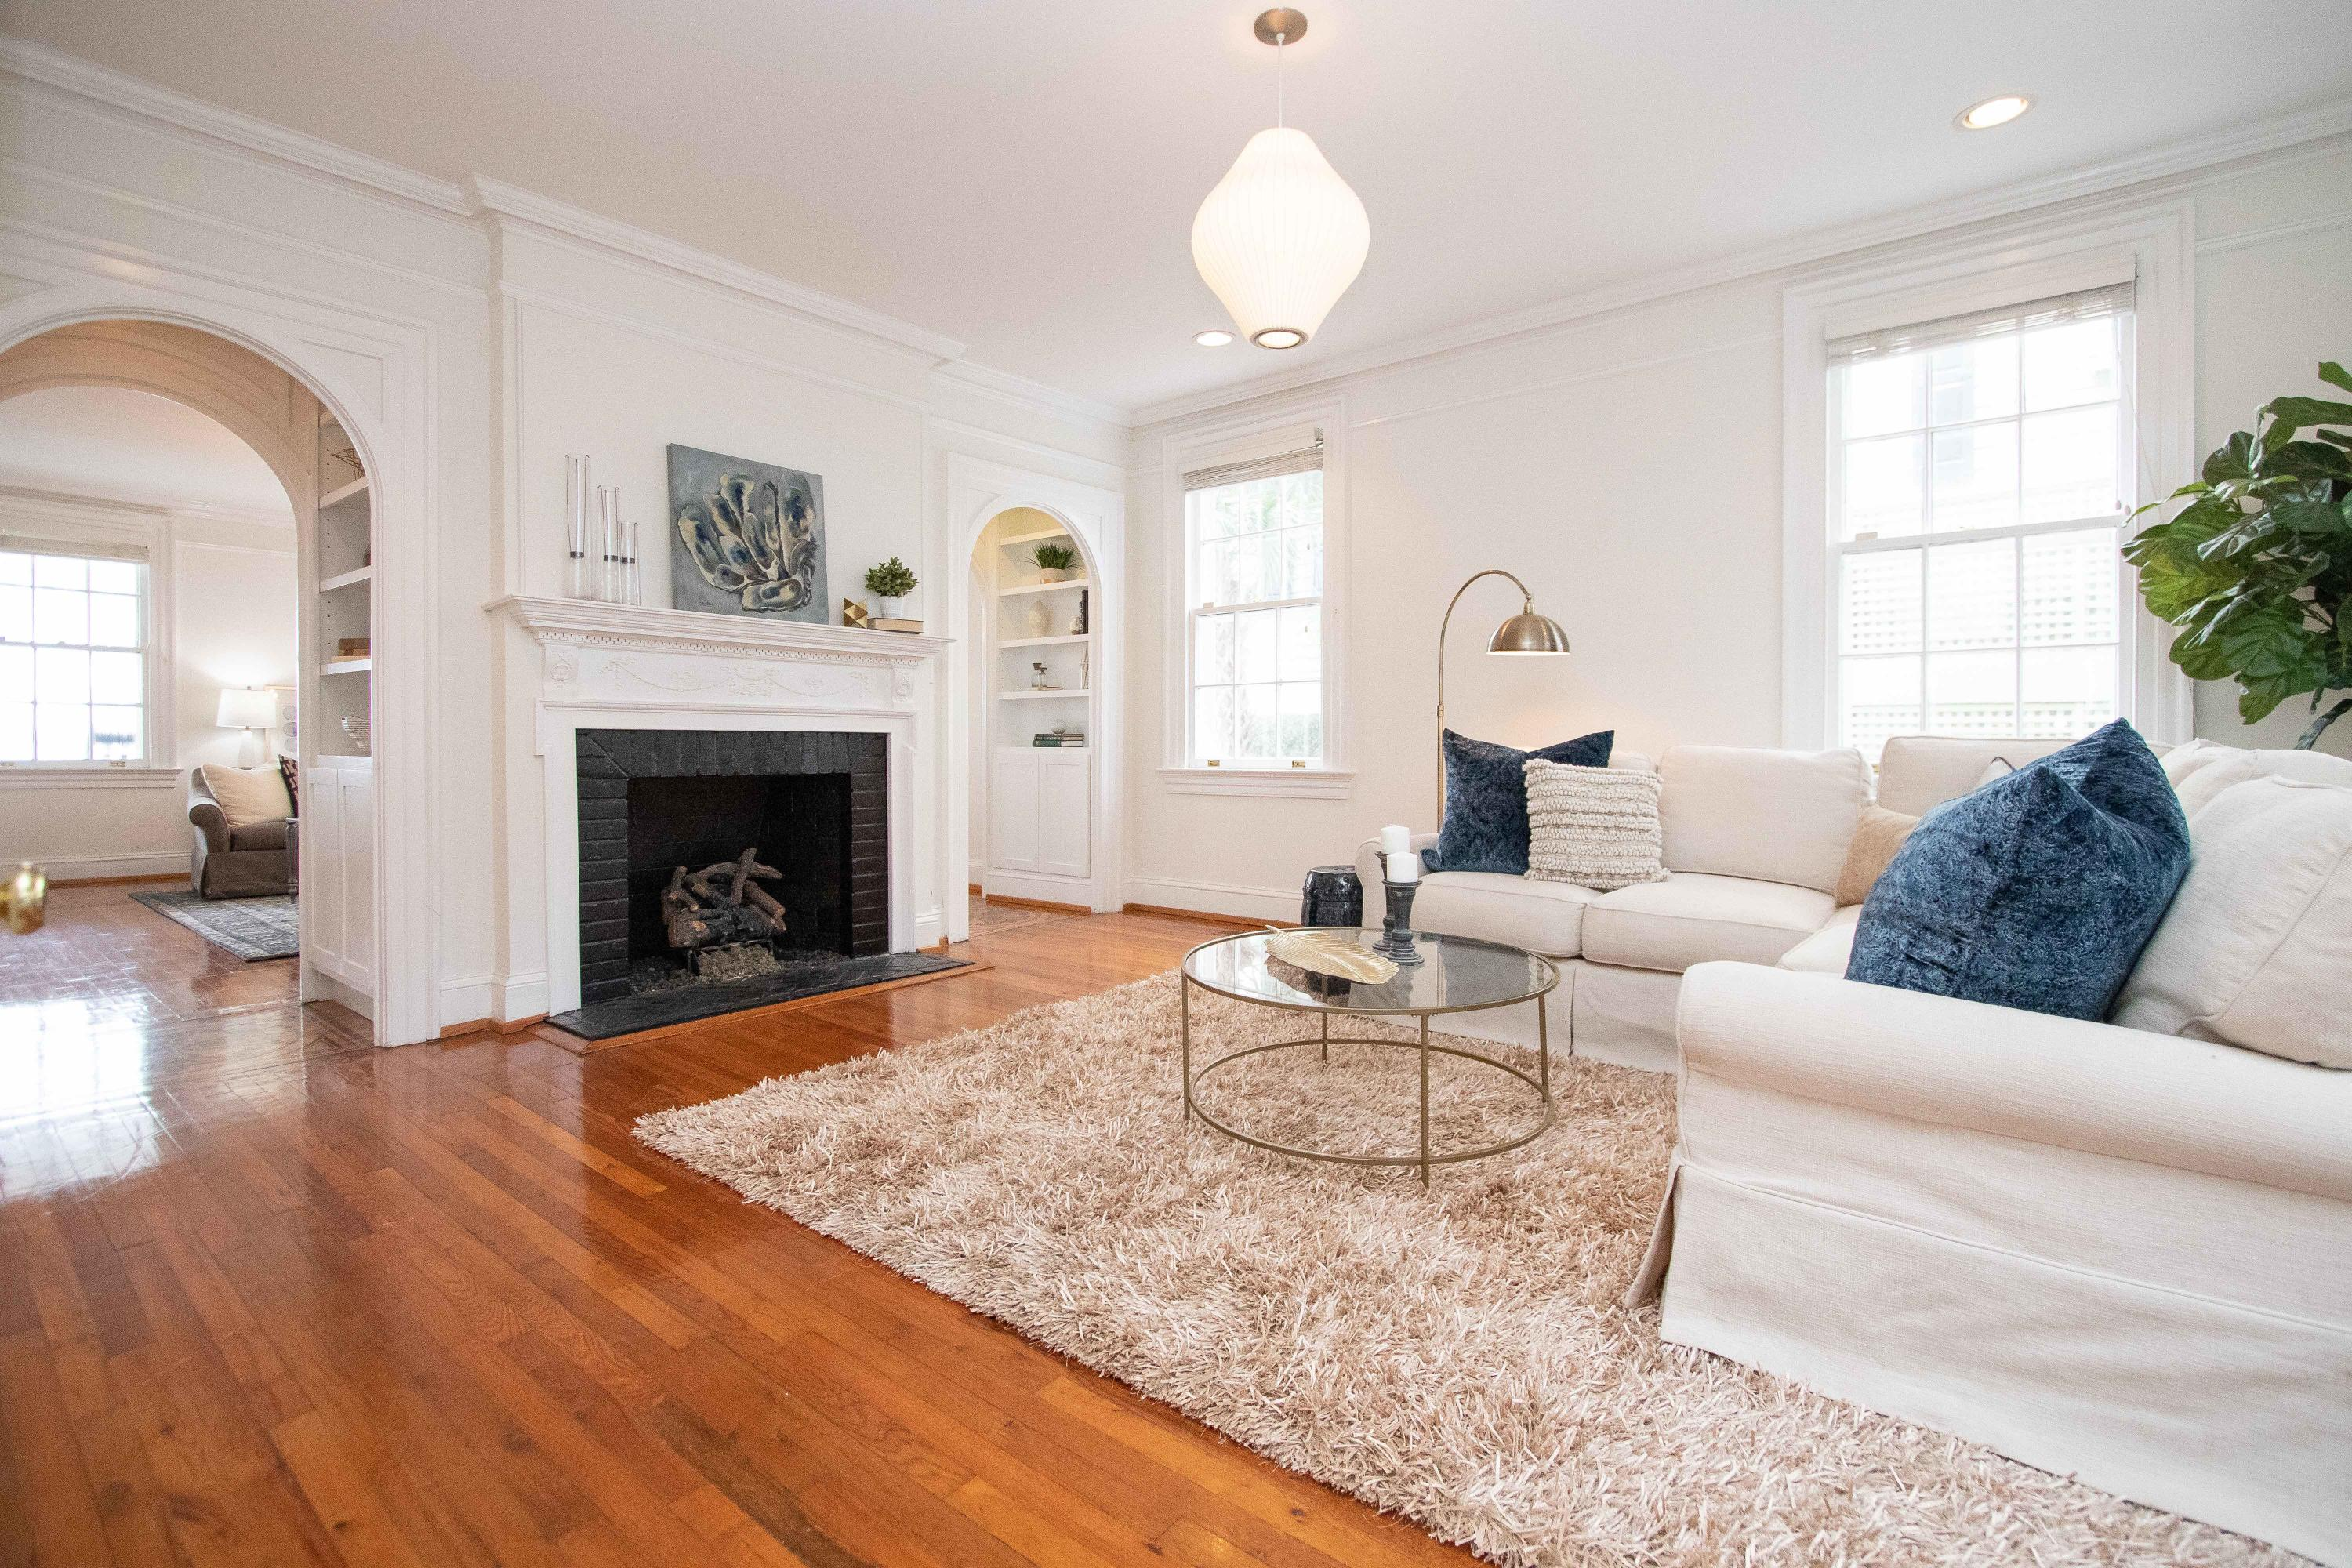 South of Broad Homes For Sale - 104 Murray, Charleston, SC - 36